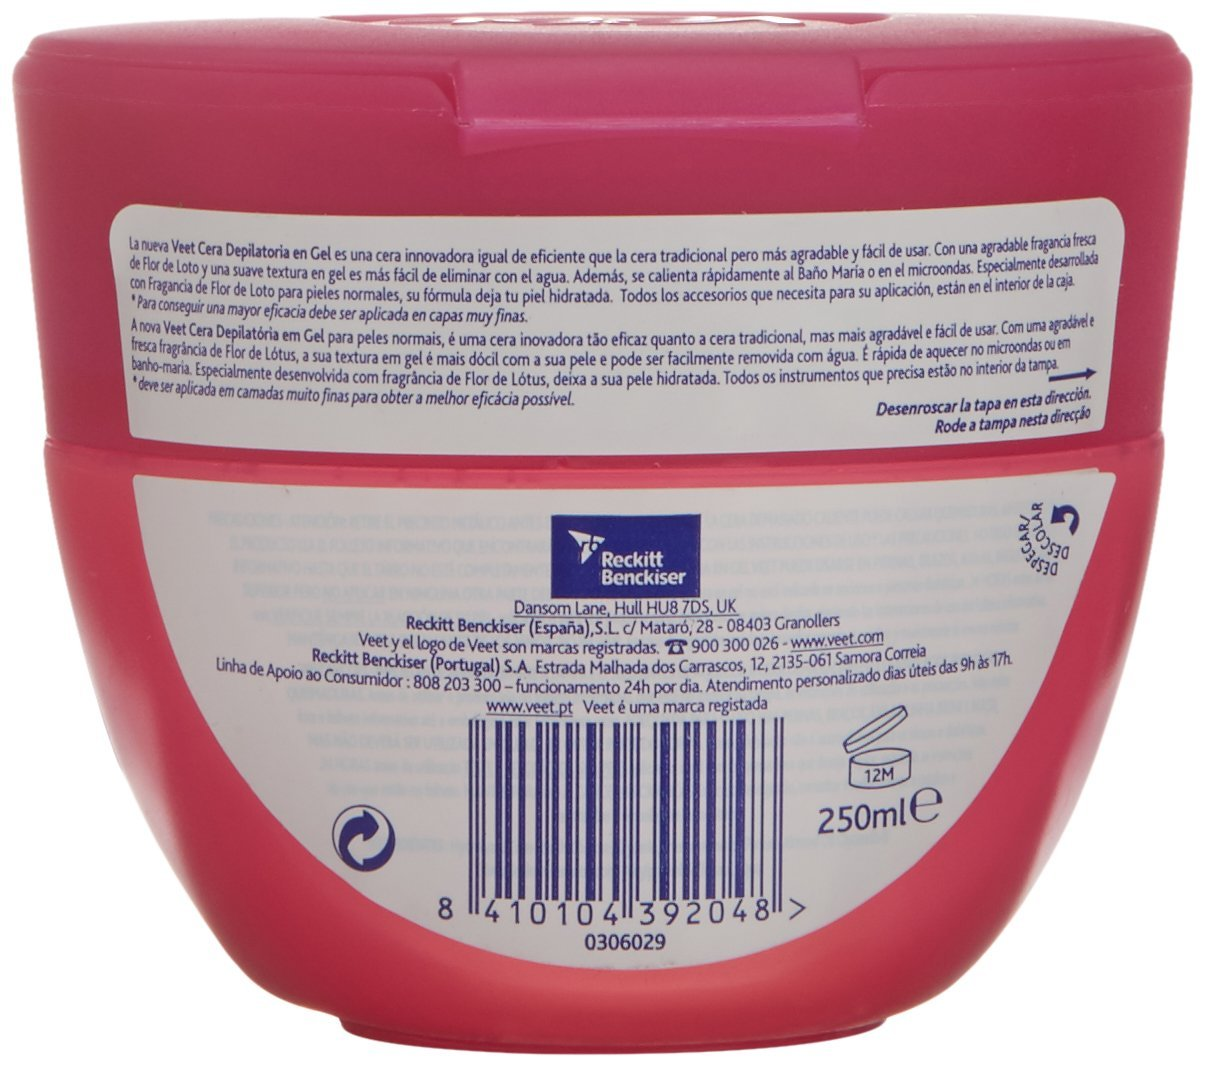 Veet Cera Depilatoria en Gel Flor de Loto Piel Normal - 250 ml: Amazon.es: Belleza